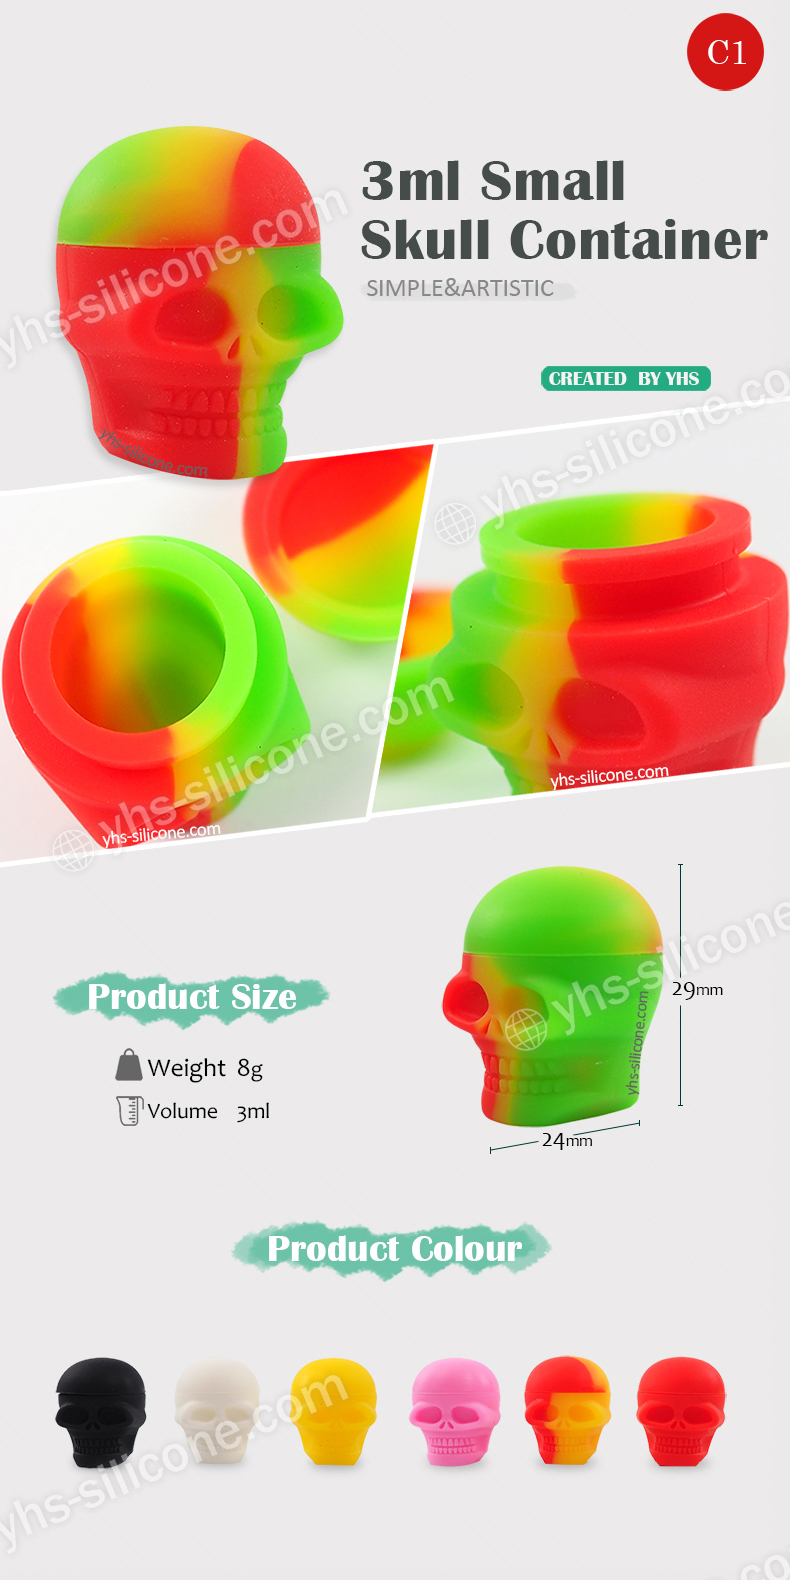 C1 3ml Small skull container.jpg